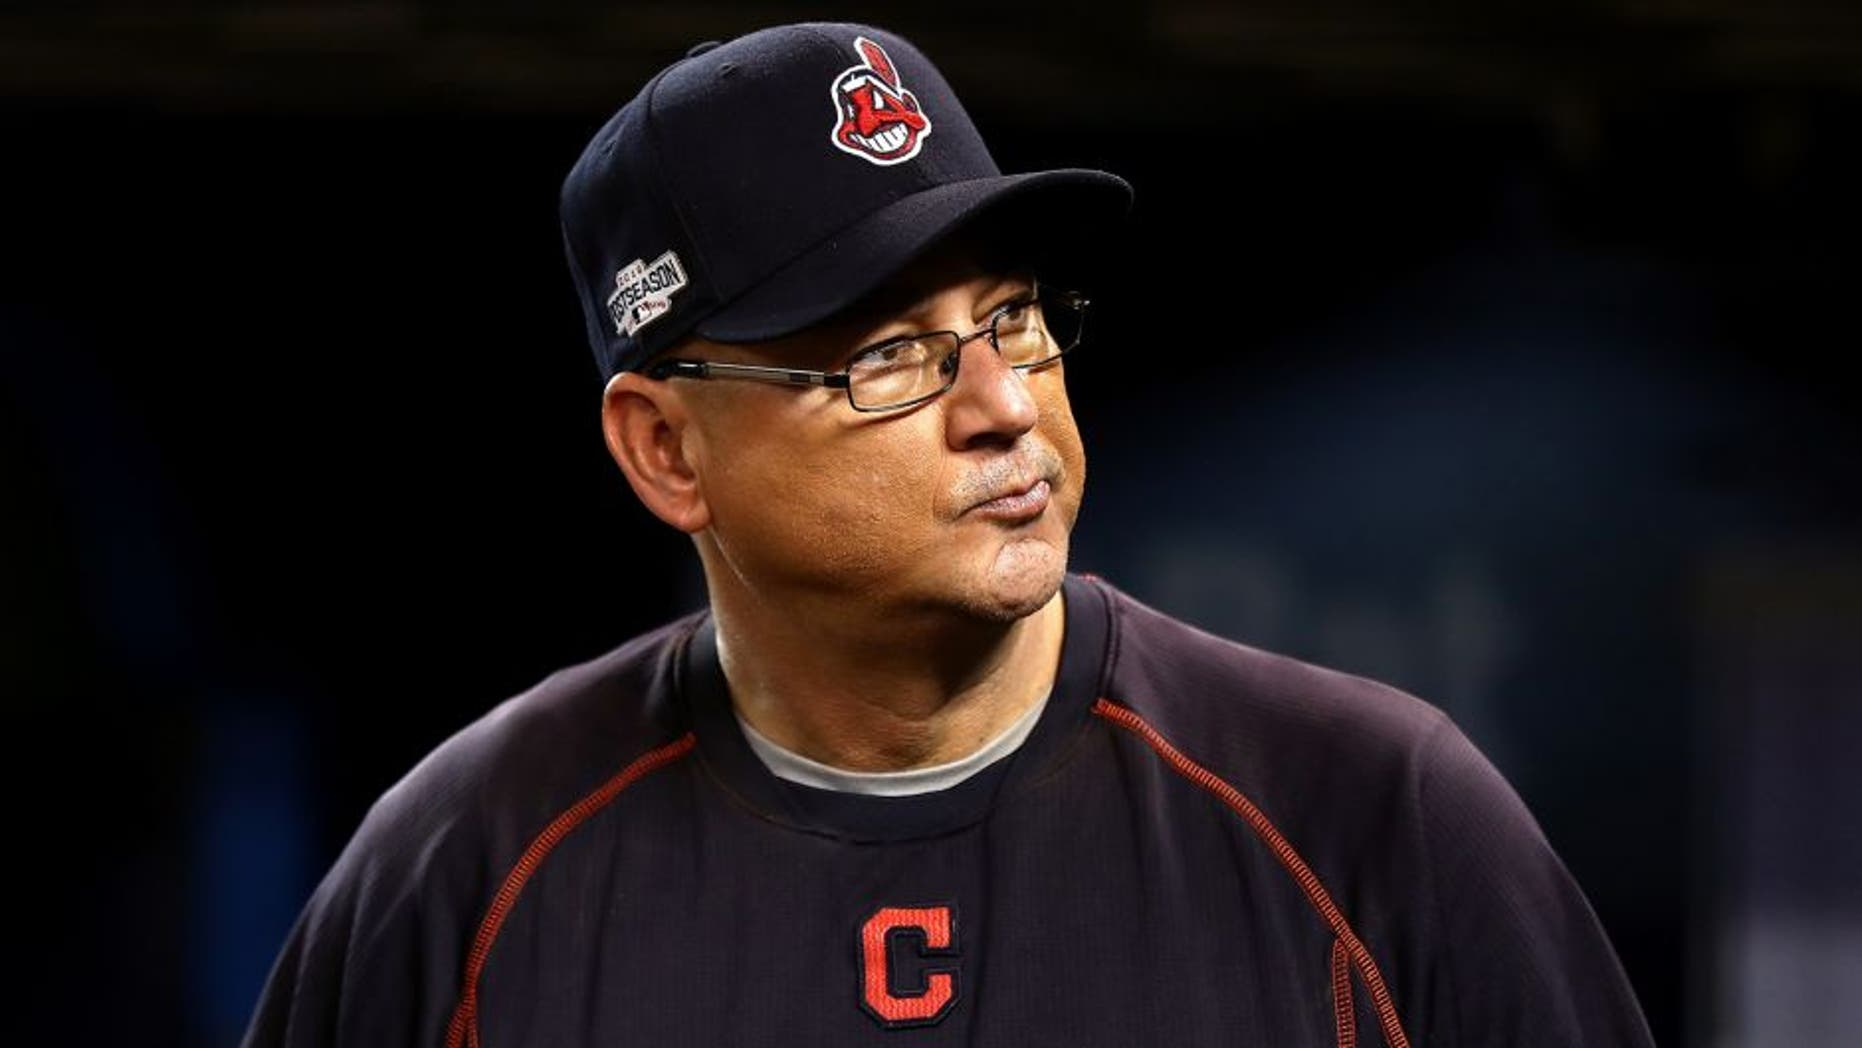 TORONTO, ON - OCTOBER 17: Terry Francona #17 of the Cleveland Indians looks on prior to game three of the American League Championship Series against the Toronto Blue Jays at Rogers Centre on October 17, 2016 in Toronto, Canada. (Photo by Elsa/Getty Images)